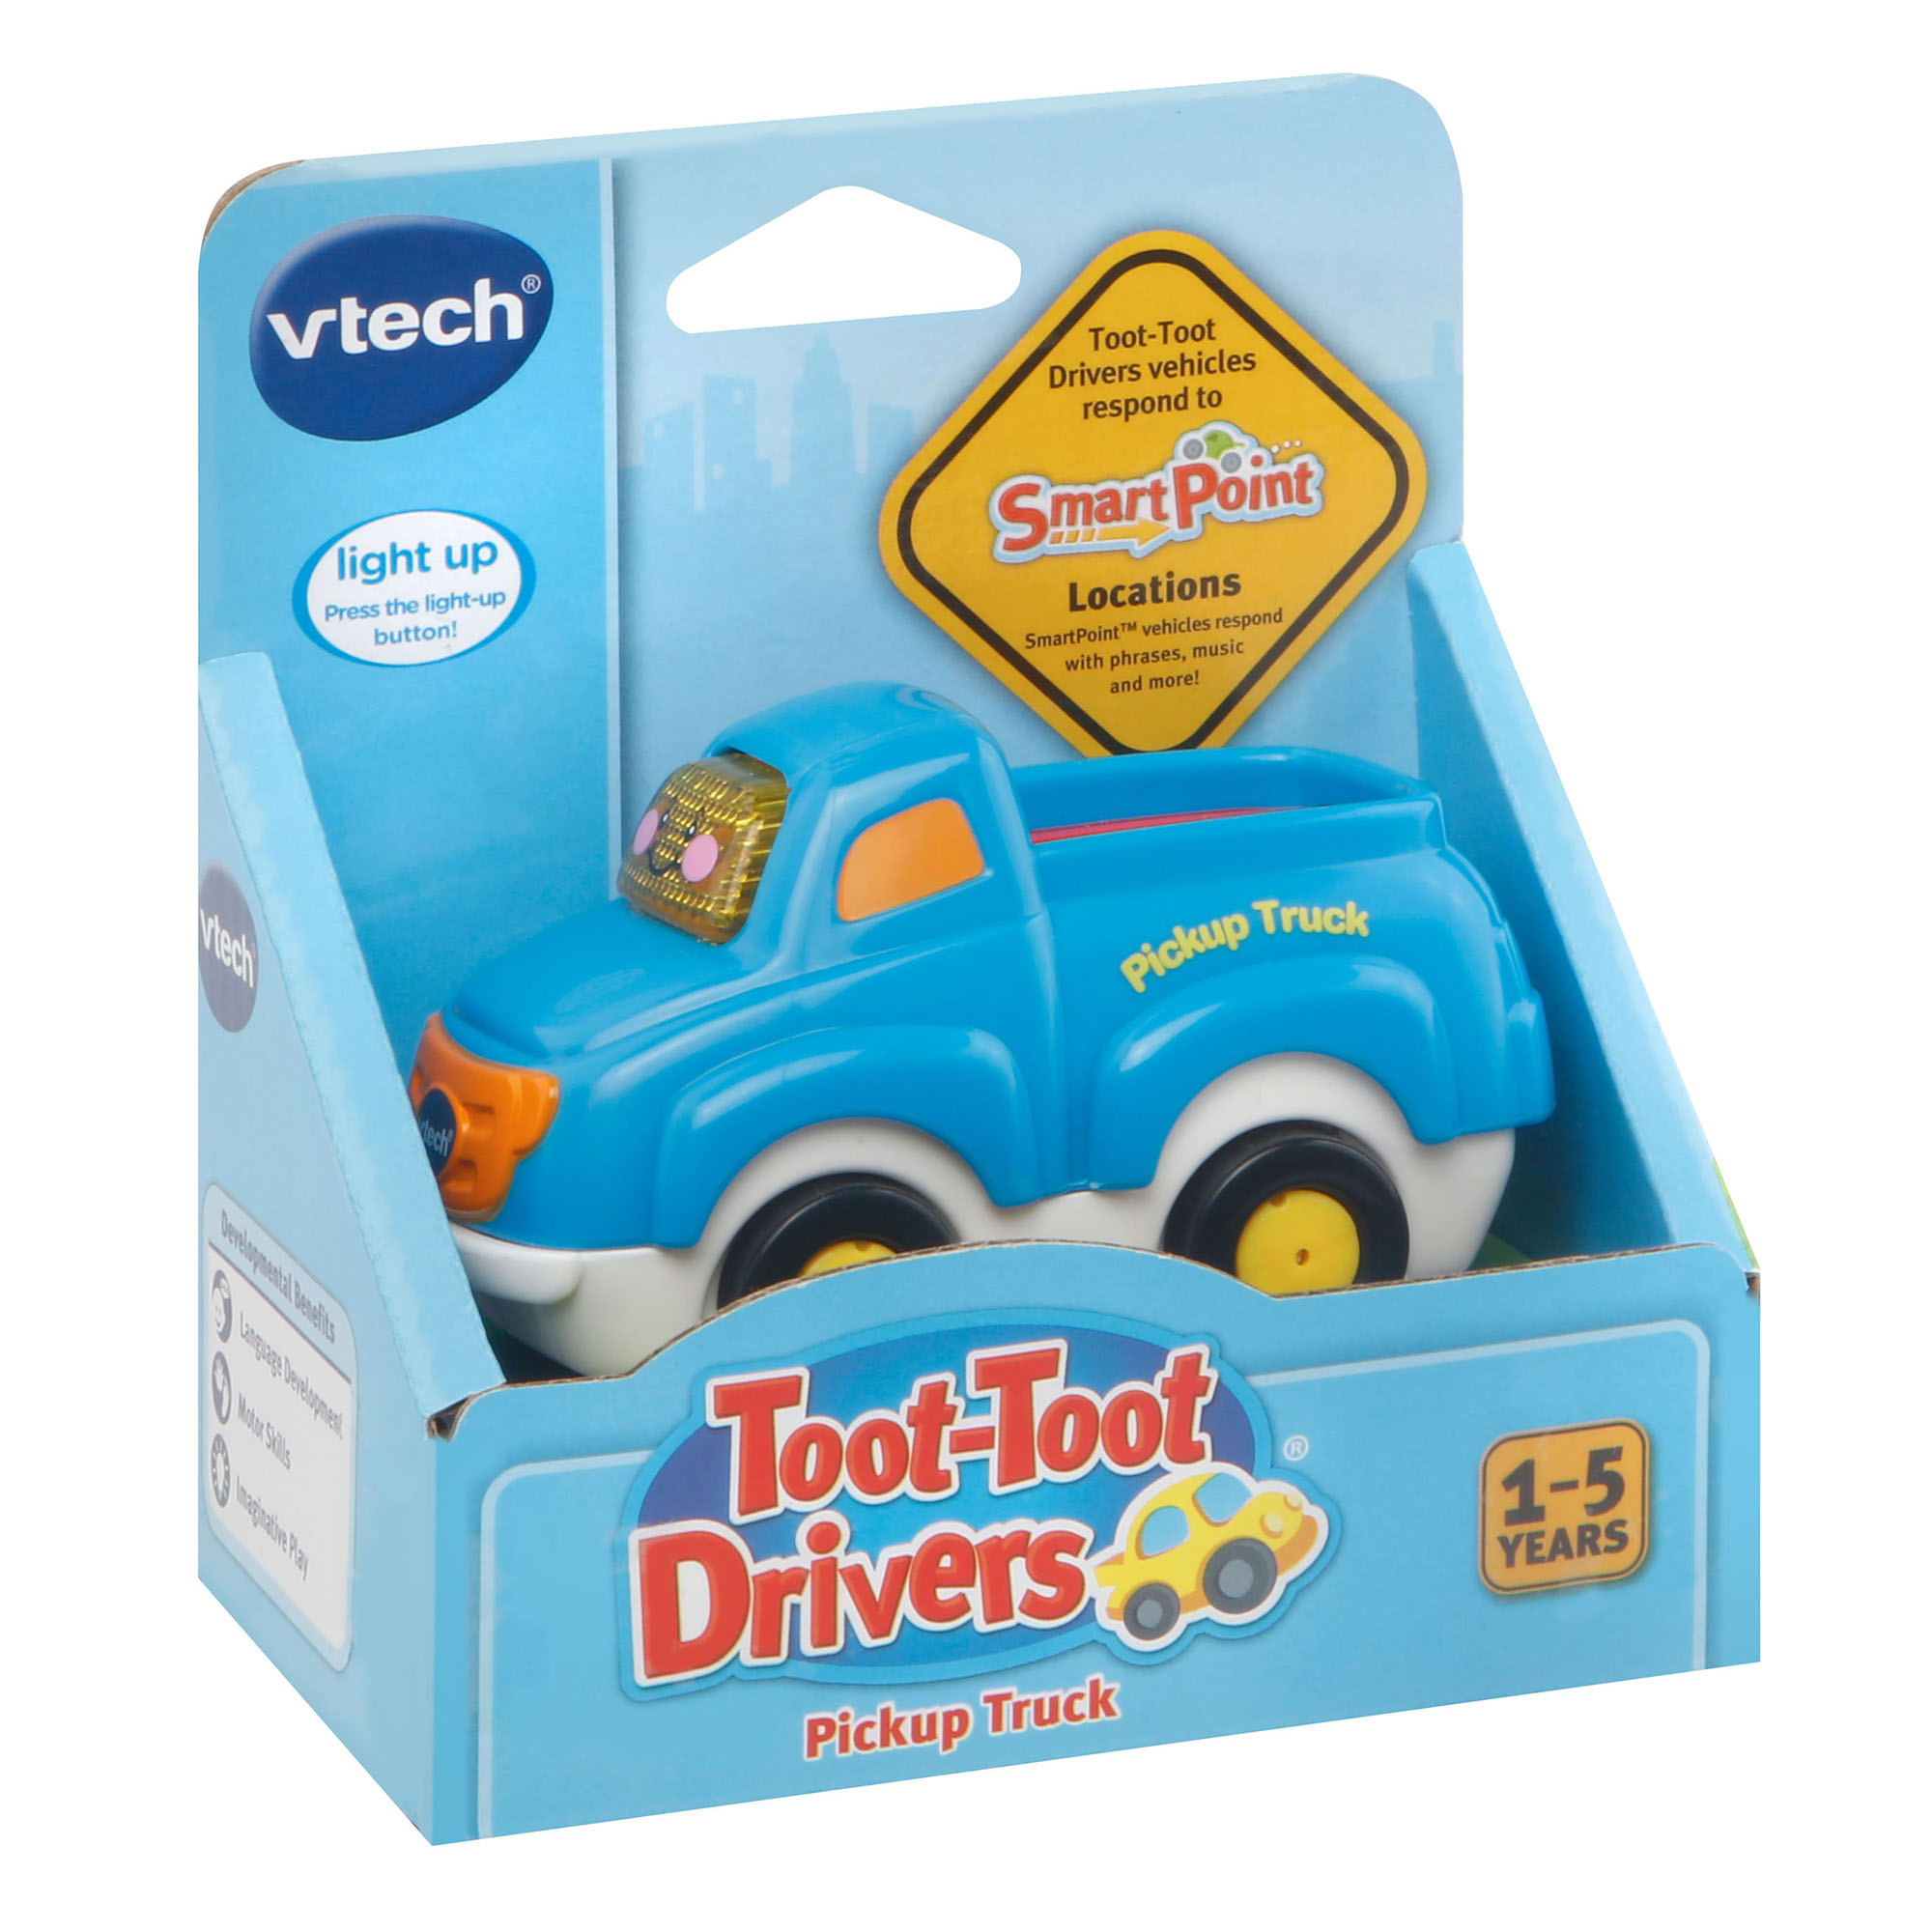 VTech Toot Toot Drivers Pick Up Truck